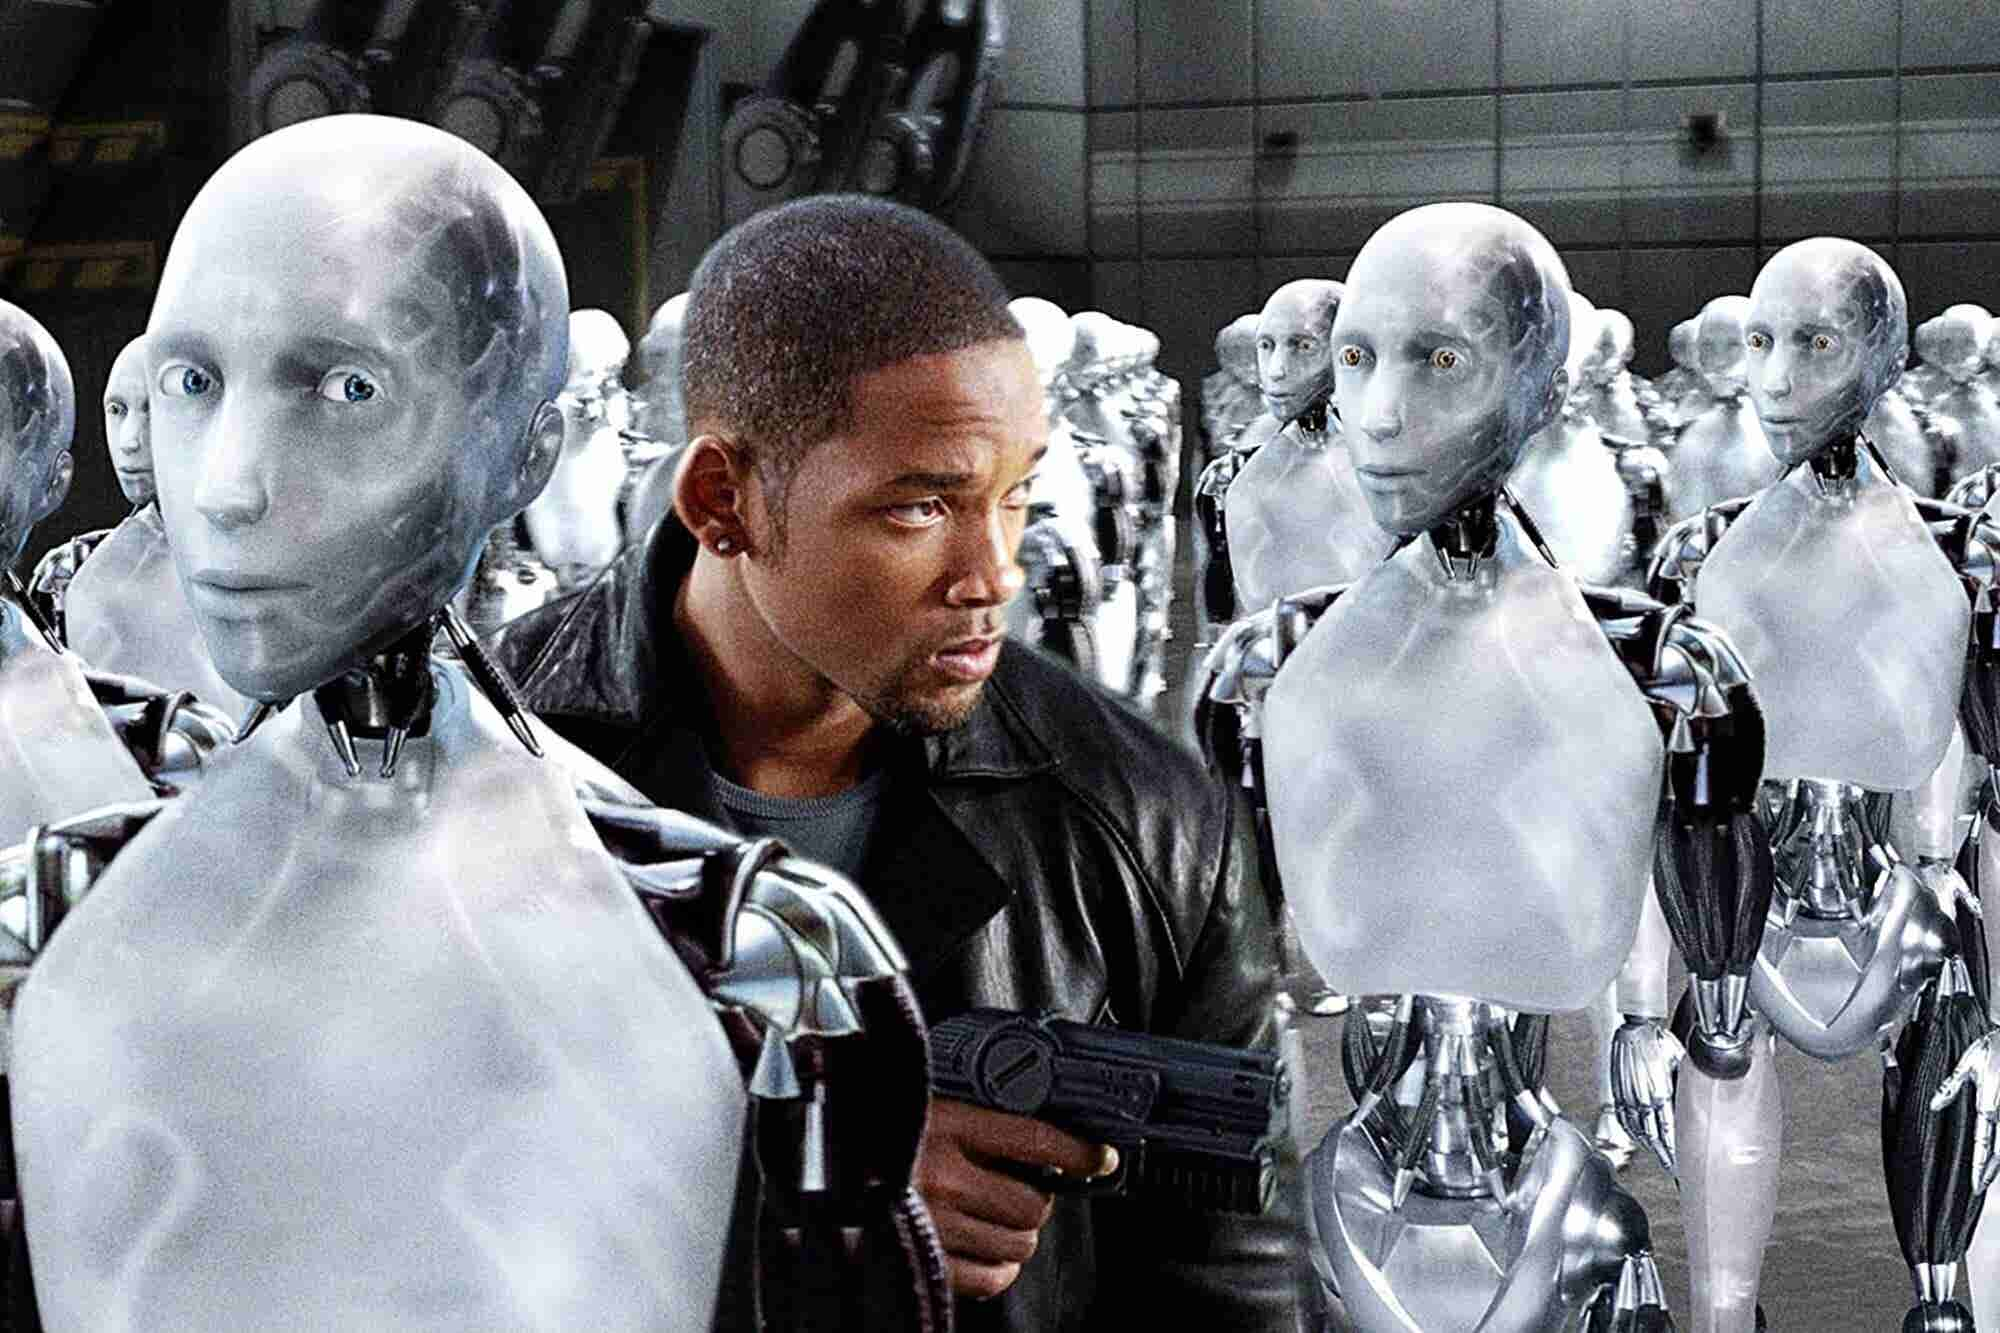 Elon Musk Predicted Artificial Intelligence Would Be 'Seriously Dangerous' by 2019. How Close Is That to Reality?